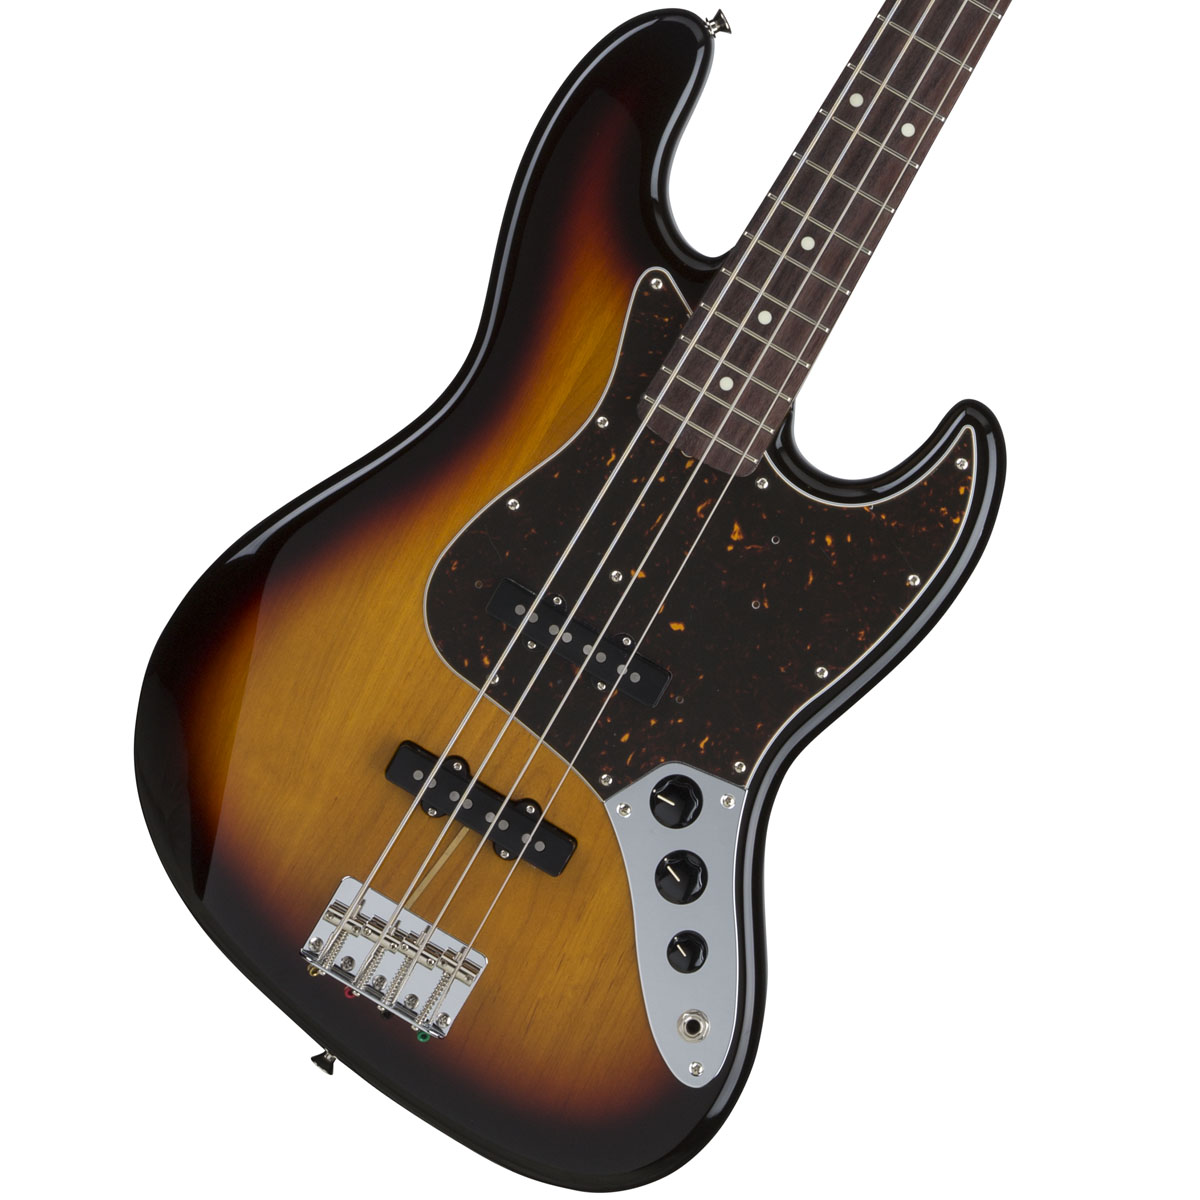 Fender / Made in Japan Hybrid 60s Jazz Bass 3 Color Sunburst《FENDERケアキットプレゼント/+671038200》《ベース弦1setプレゼント!/+811131900》【YRK】